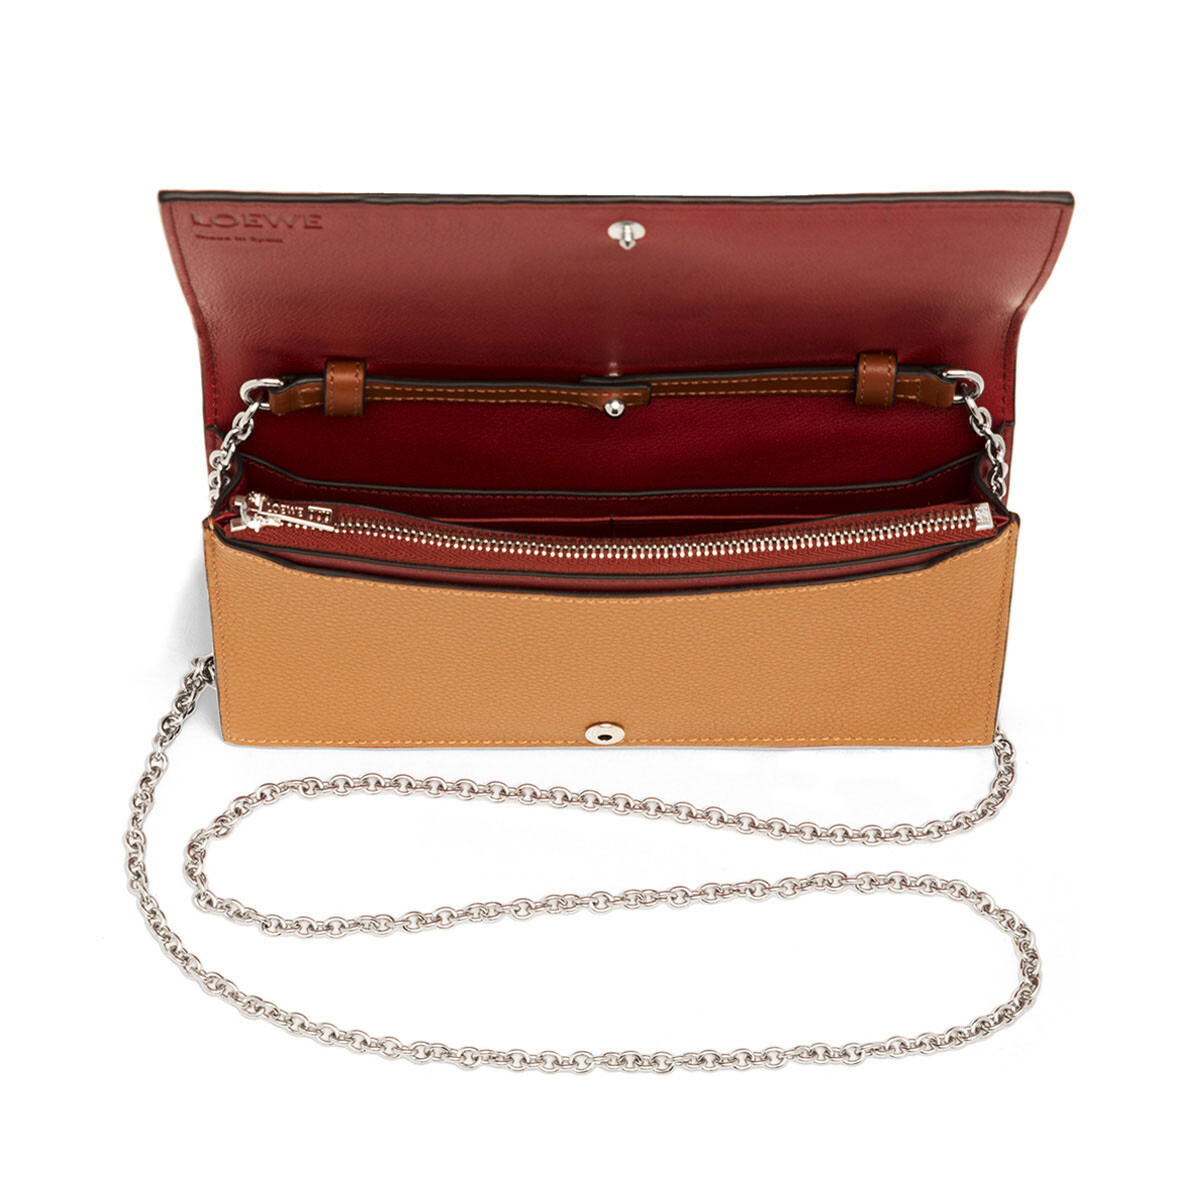 LOEWE Wallet On Chain Light Caramel/Pecan front